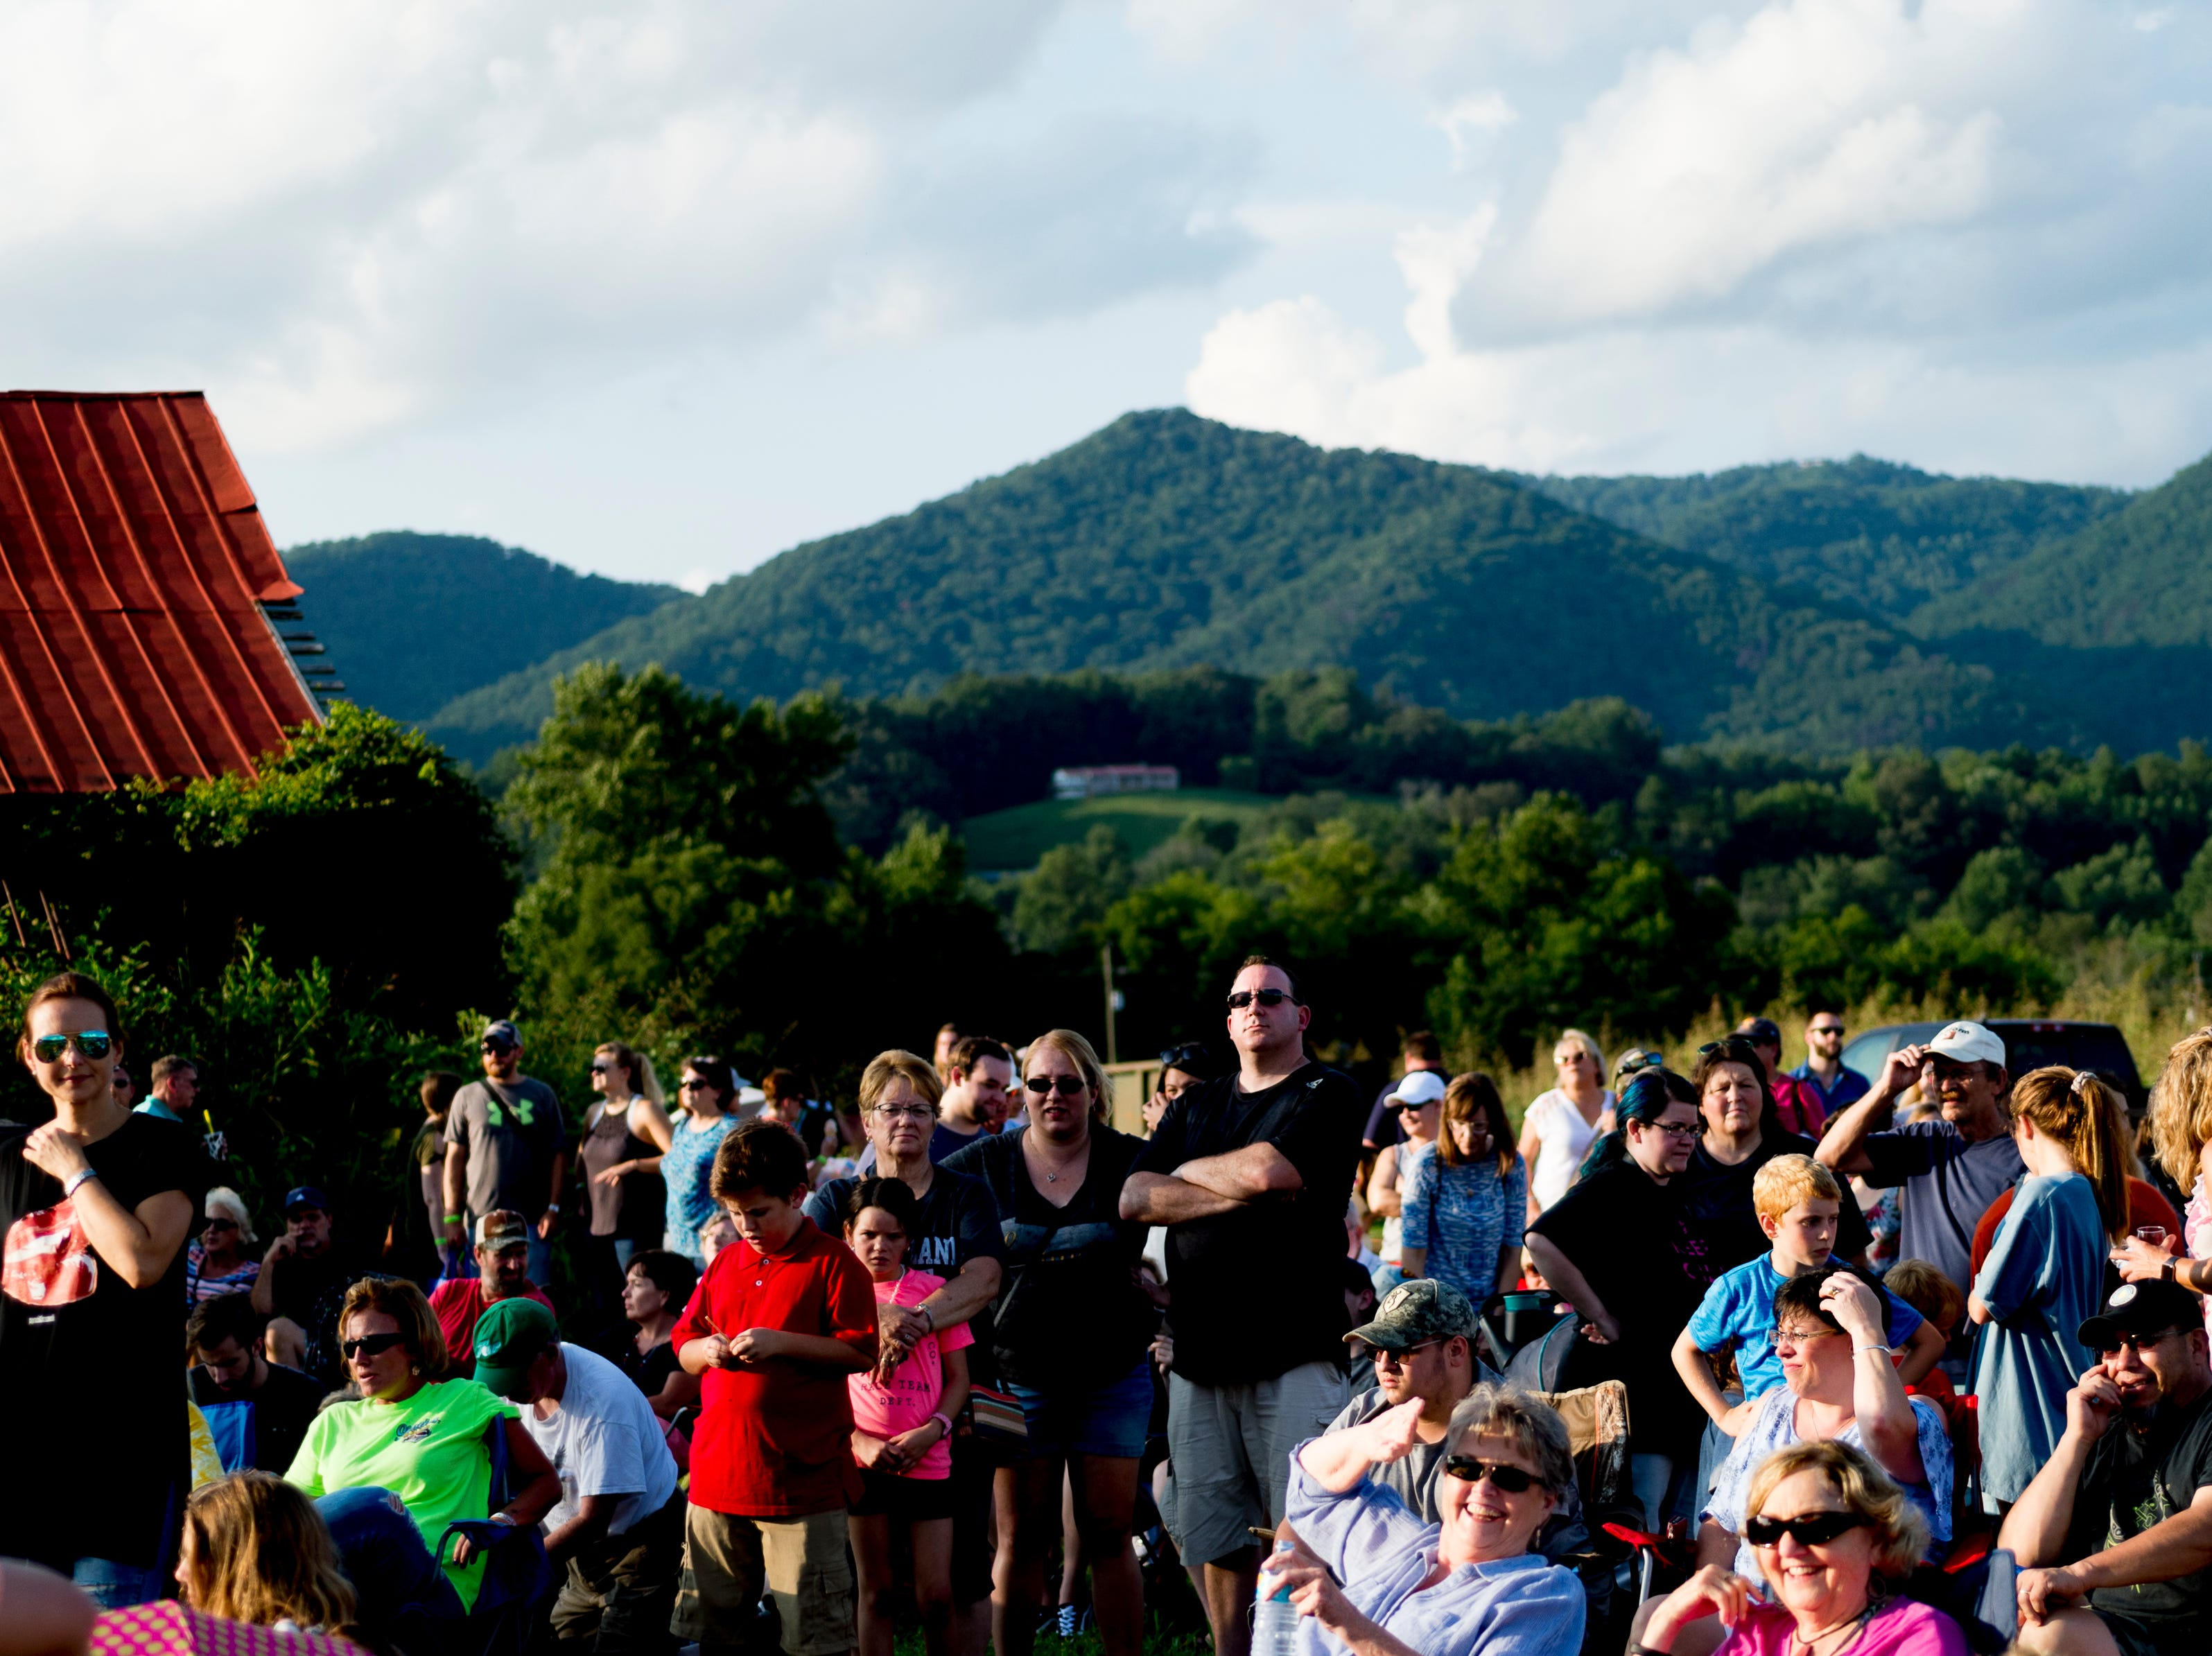 Visitors watch as the balloons are inflated at the second annual Smoky Mountain Balloon Festival in Townsend, Tennessee on Saturday, August 18, 2018. The festival featured several hot air balloons, food trucks, wine tasting and live entertainment.